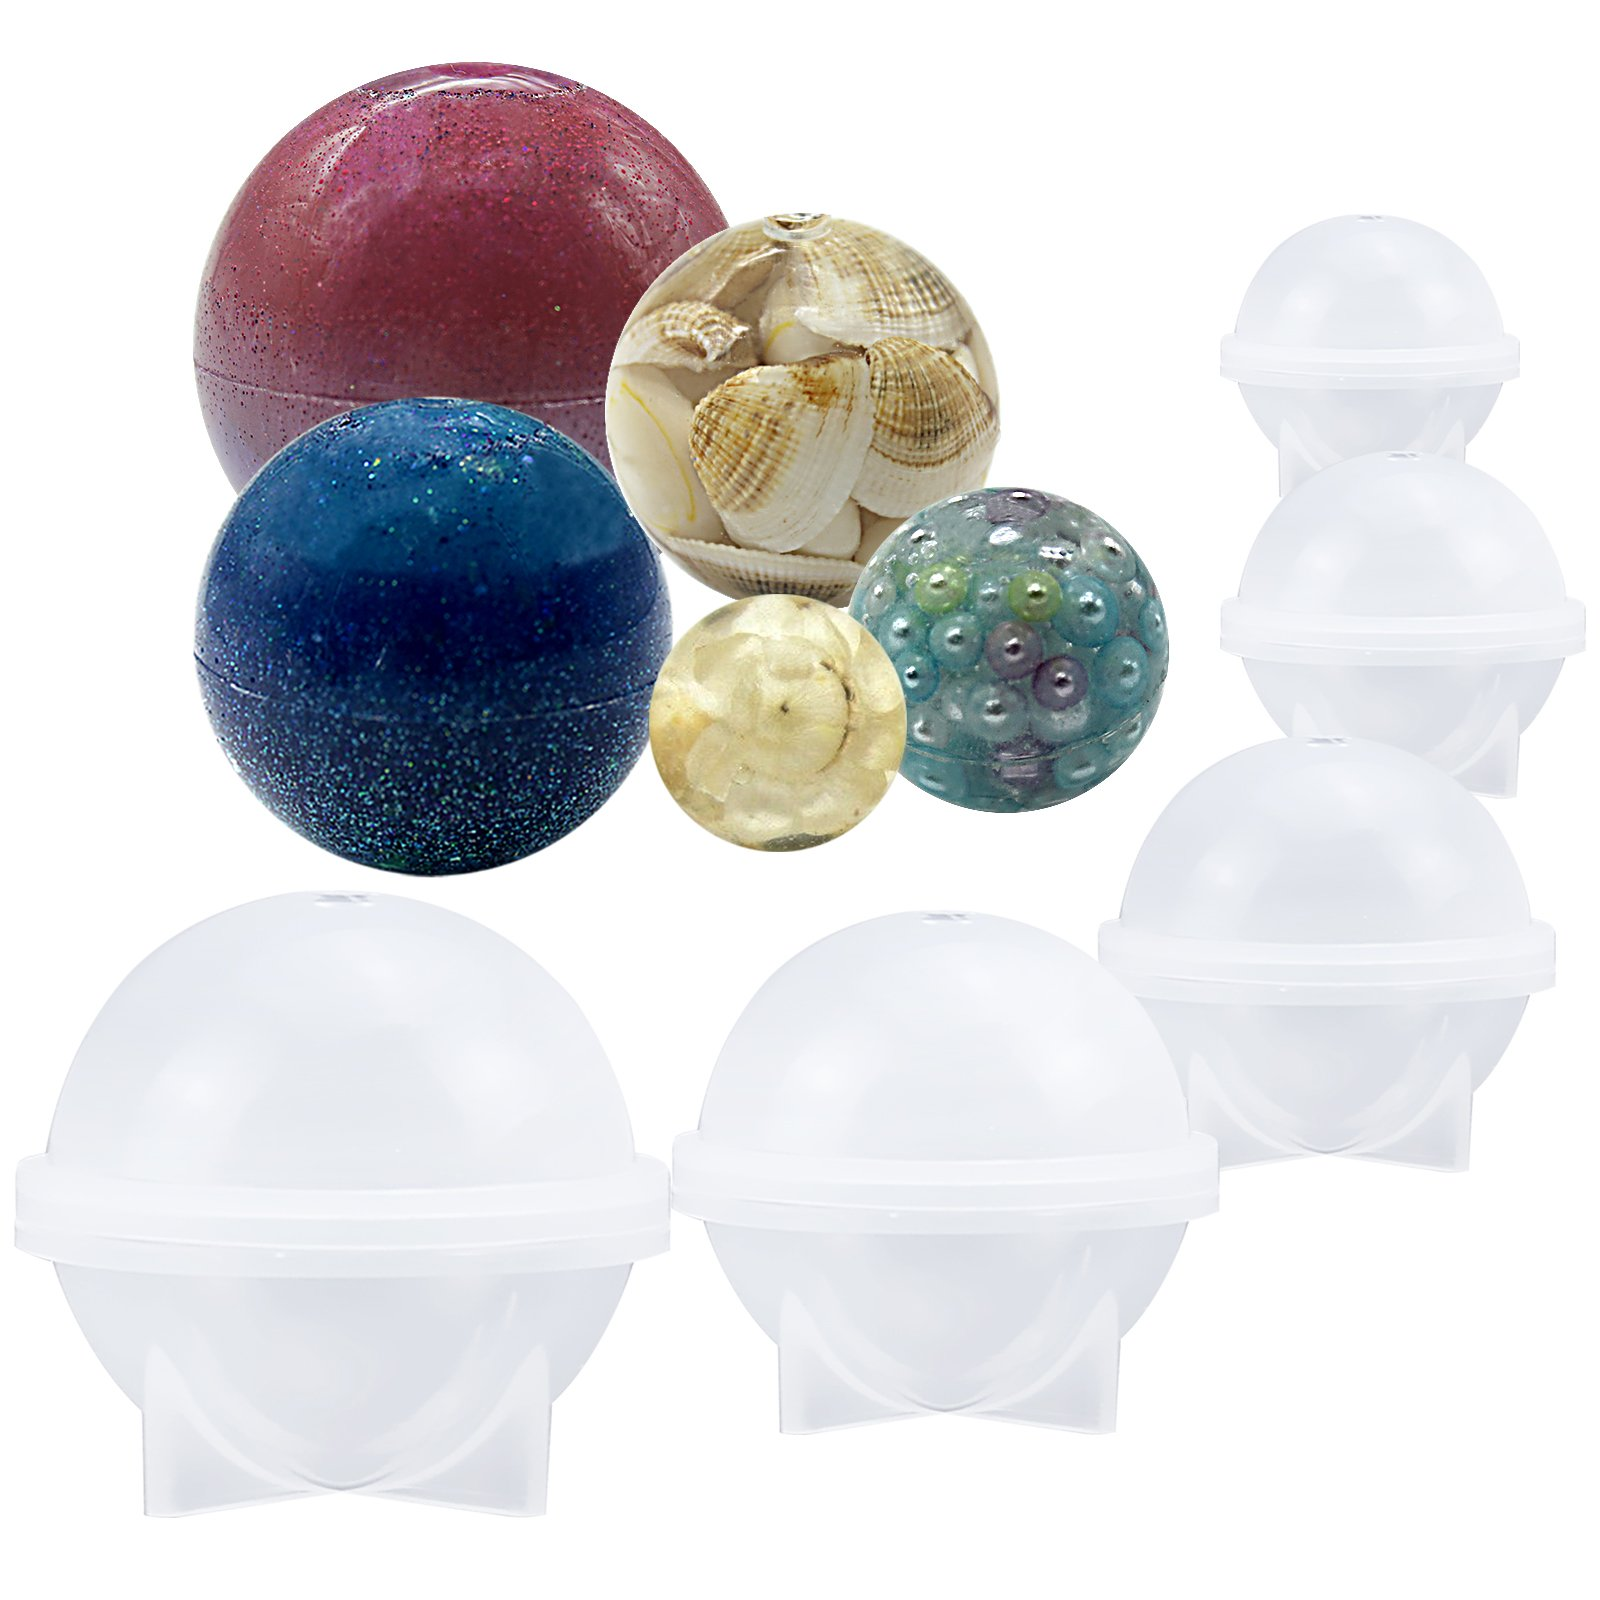 Funshowcase Sphere Round Silicone Mold for Resin Epoxy, Jewelry Making, Candle Wax, Homemade Soap, Bath Bomb 5-Piece Set